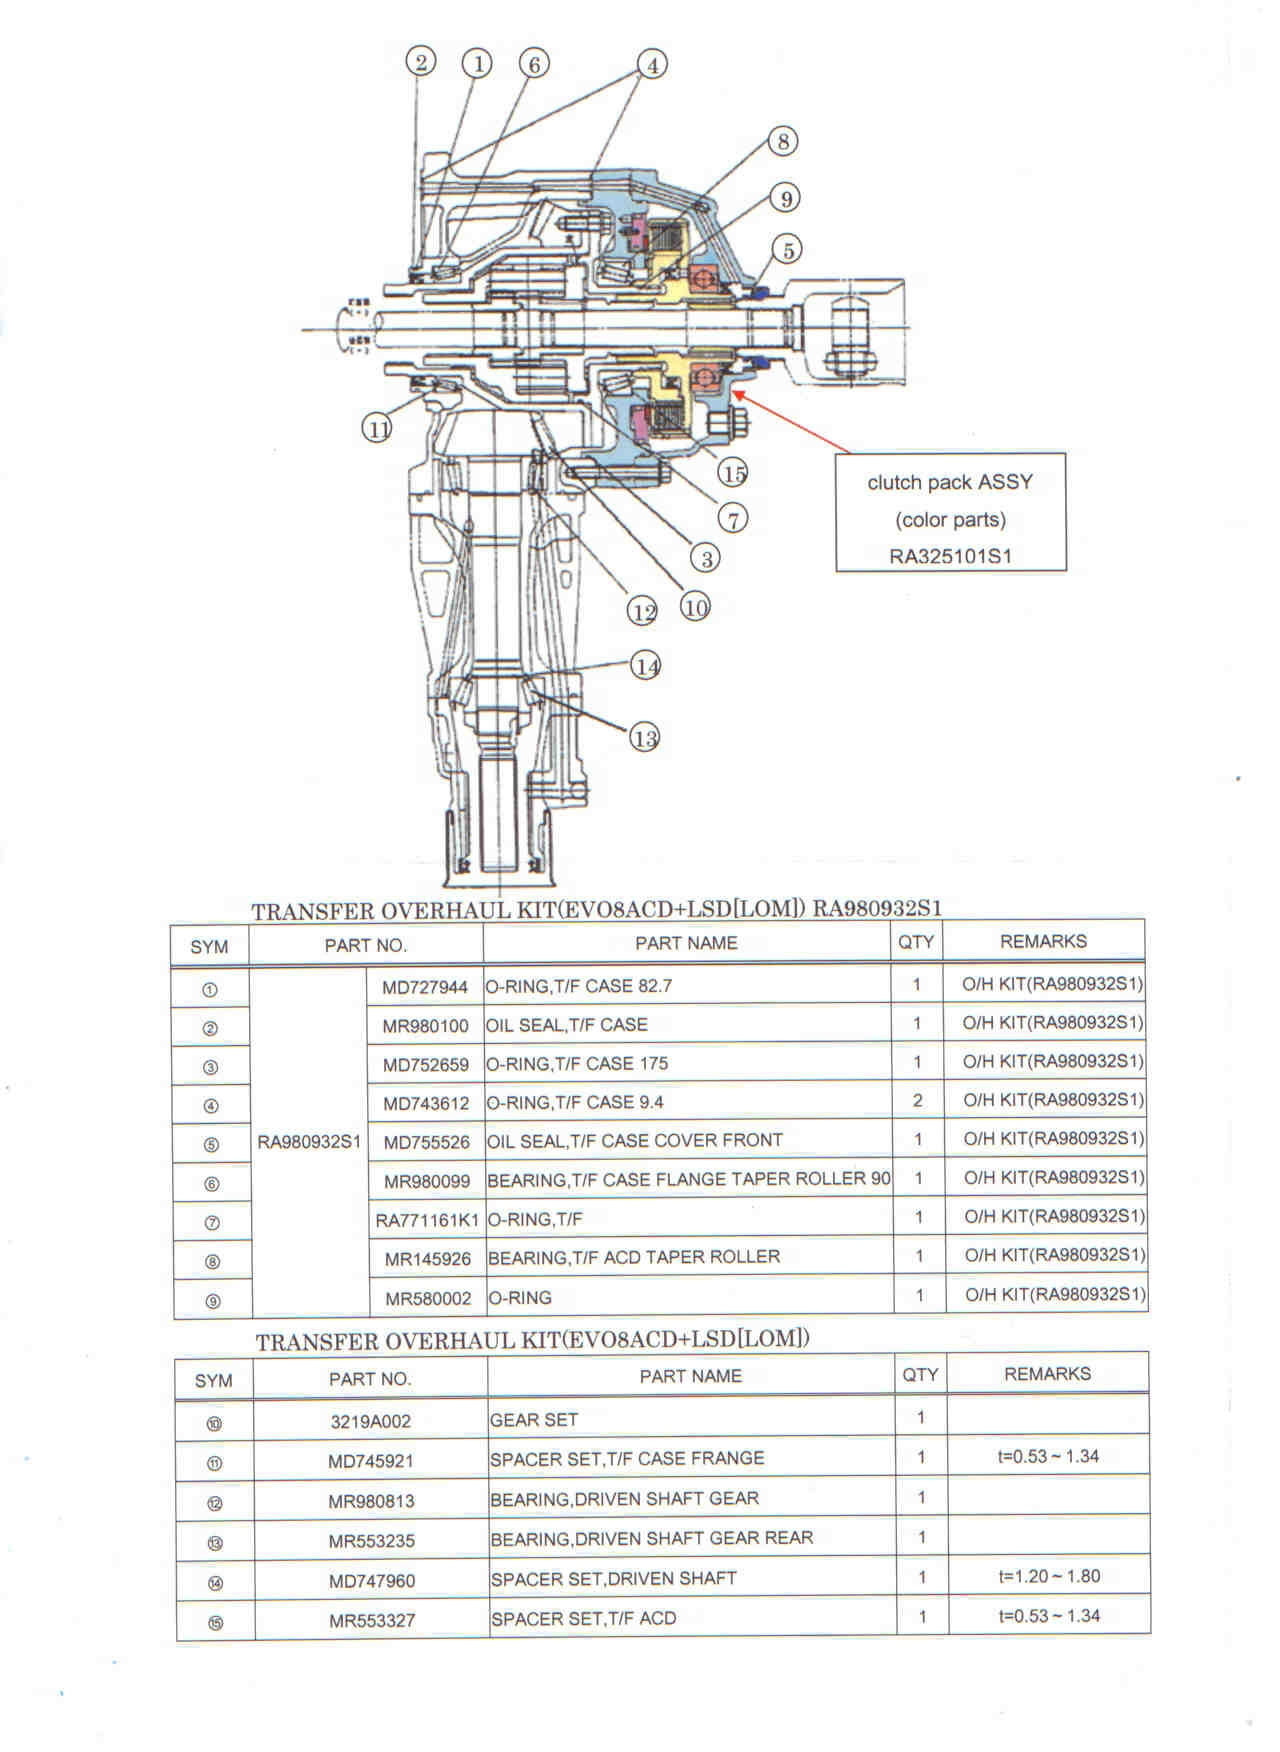 Mitsubishi Transfer Case Diagram Trusted Schematics 2004 Endeavor Limited Wiring Transfercase Bearings Evolutionm Lancer And Exploded View